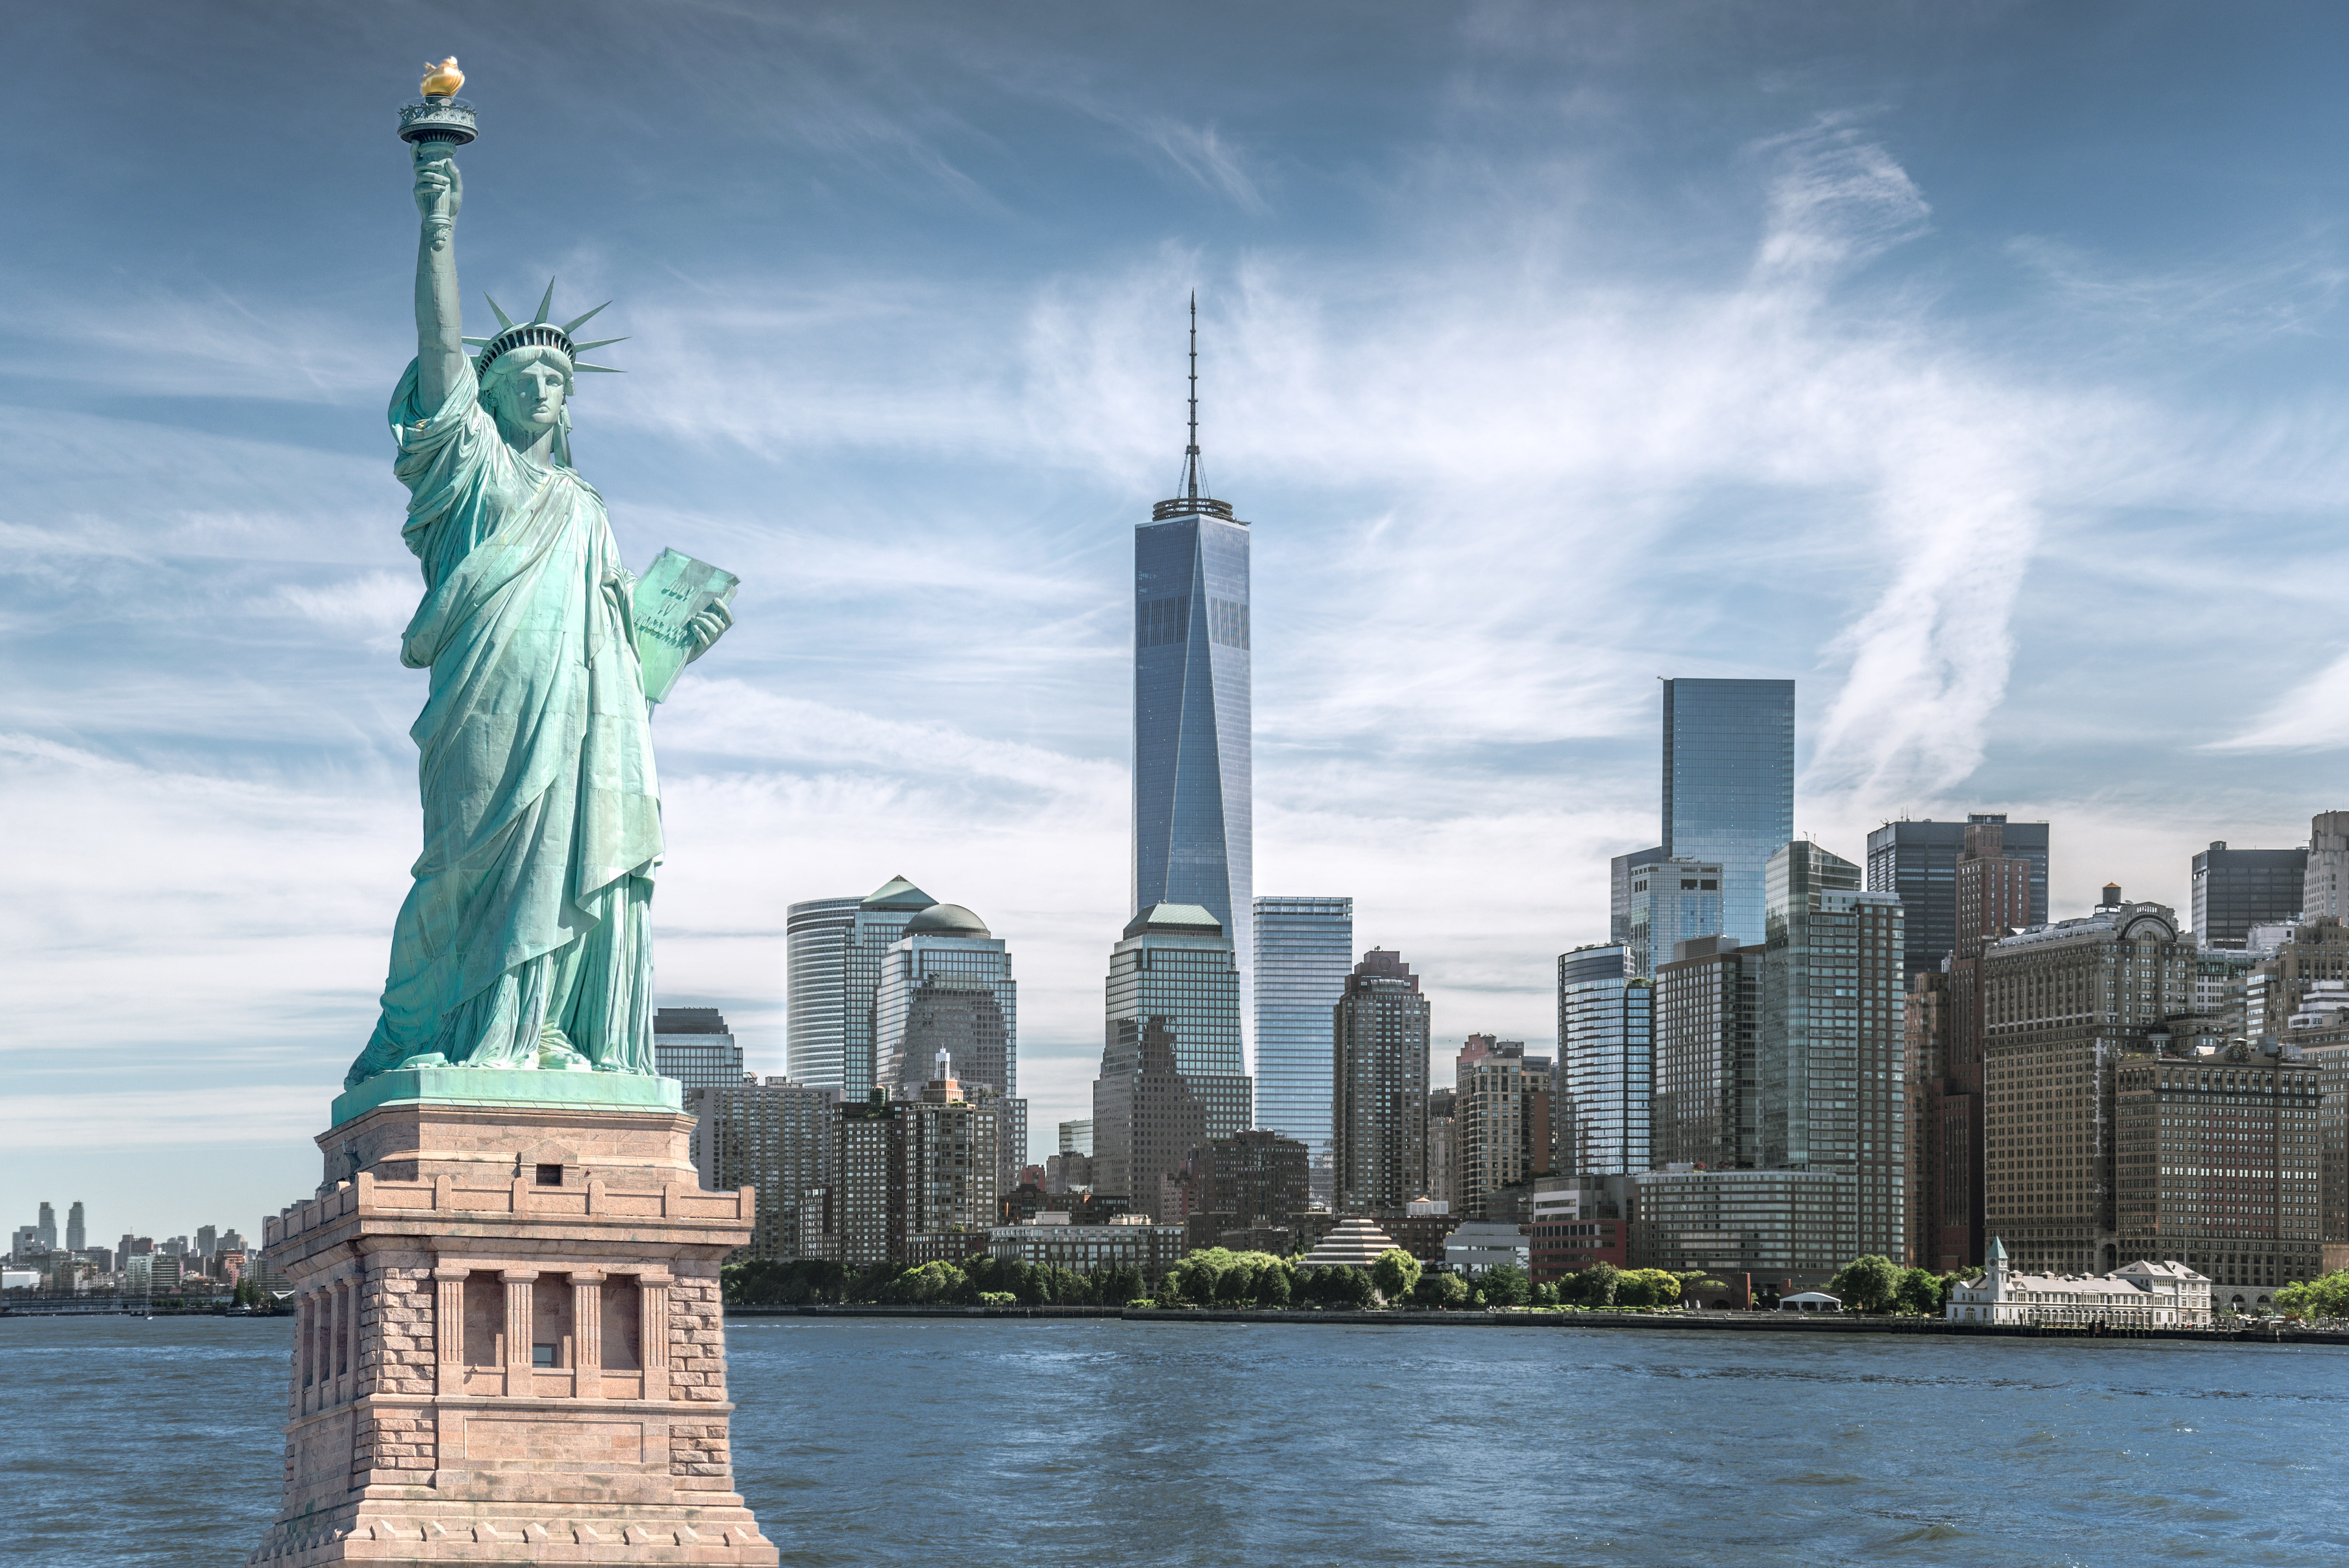 5-Day Grand U.S. East Coast Tour from Gaithersburg (Super Value )